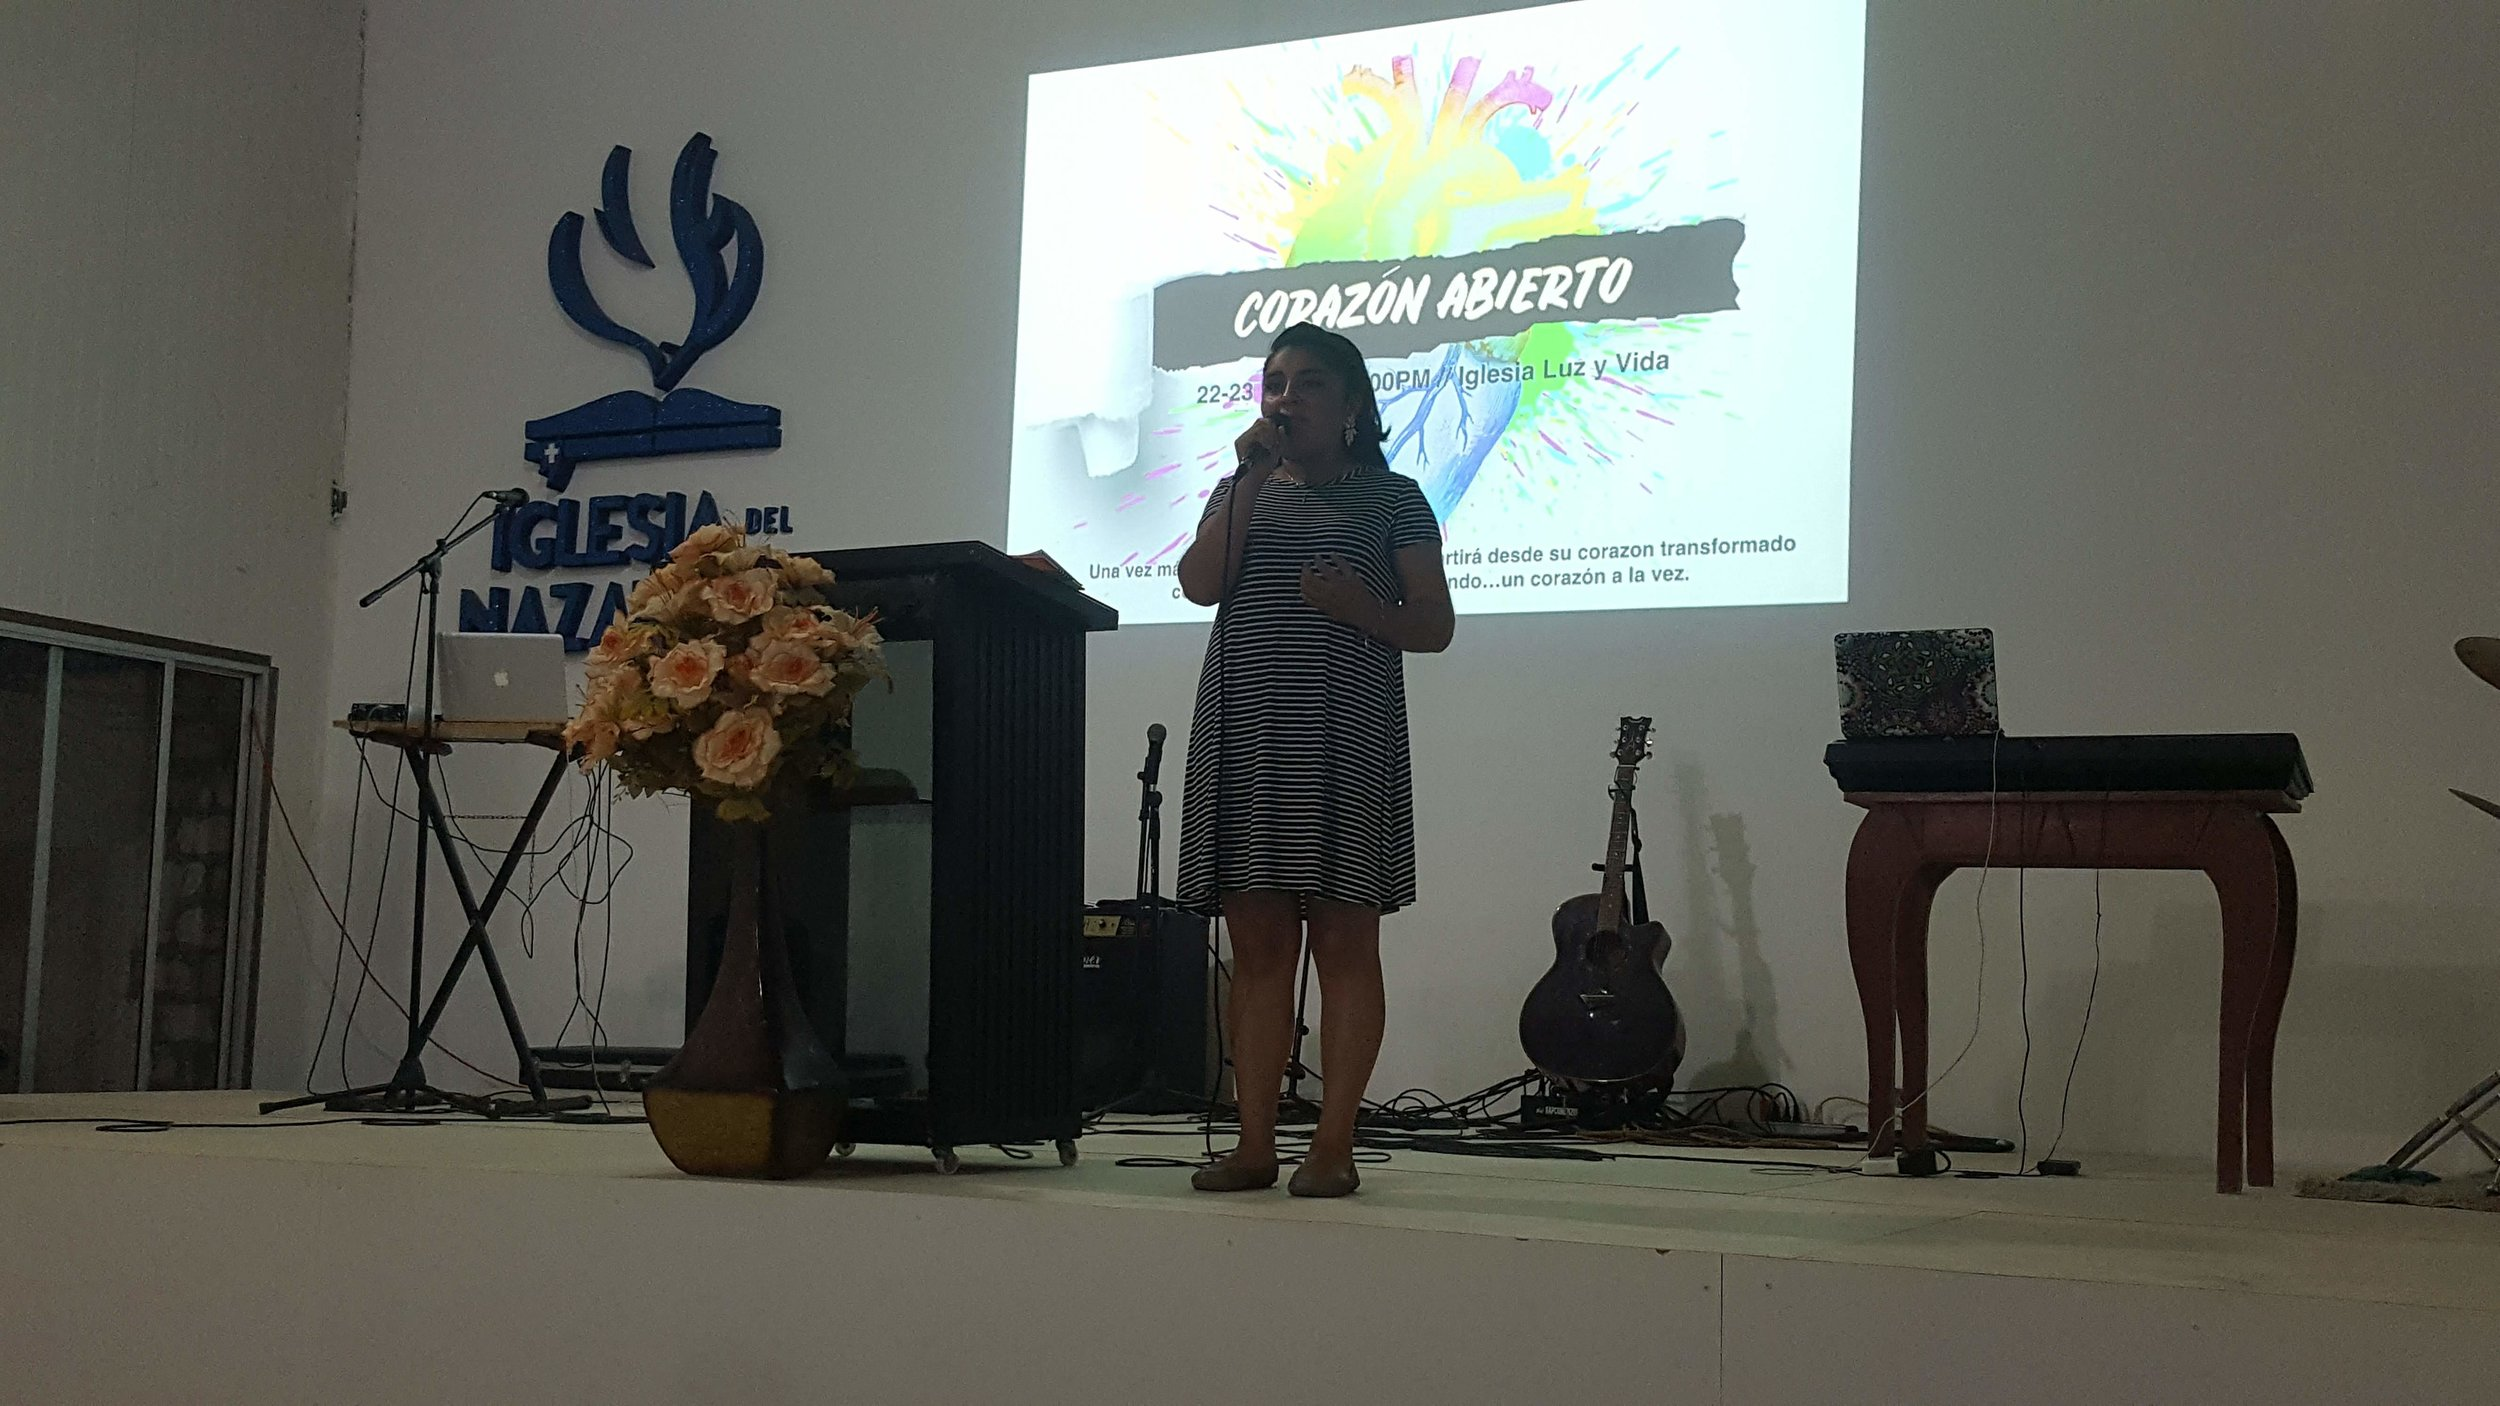 Mariana - Importance of Evangelism and Loving Others Enough to Share the Gospel